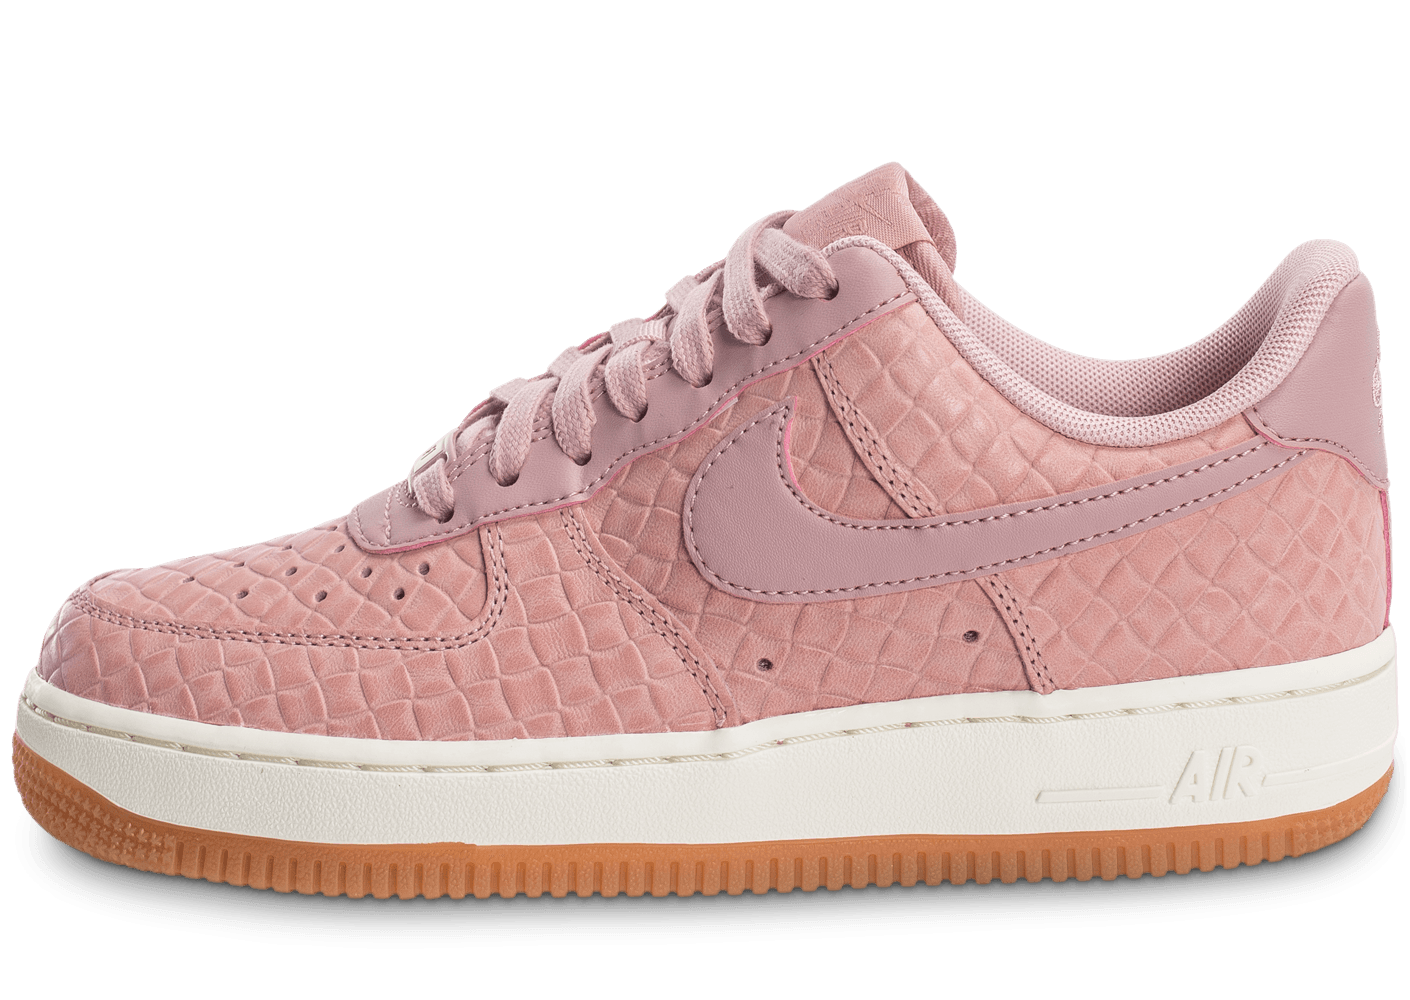 nike air force 1 39 07 premium w rose chaussures femme chausport. Black Bedroom Furniture Sets. Home Design Ideas